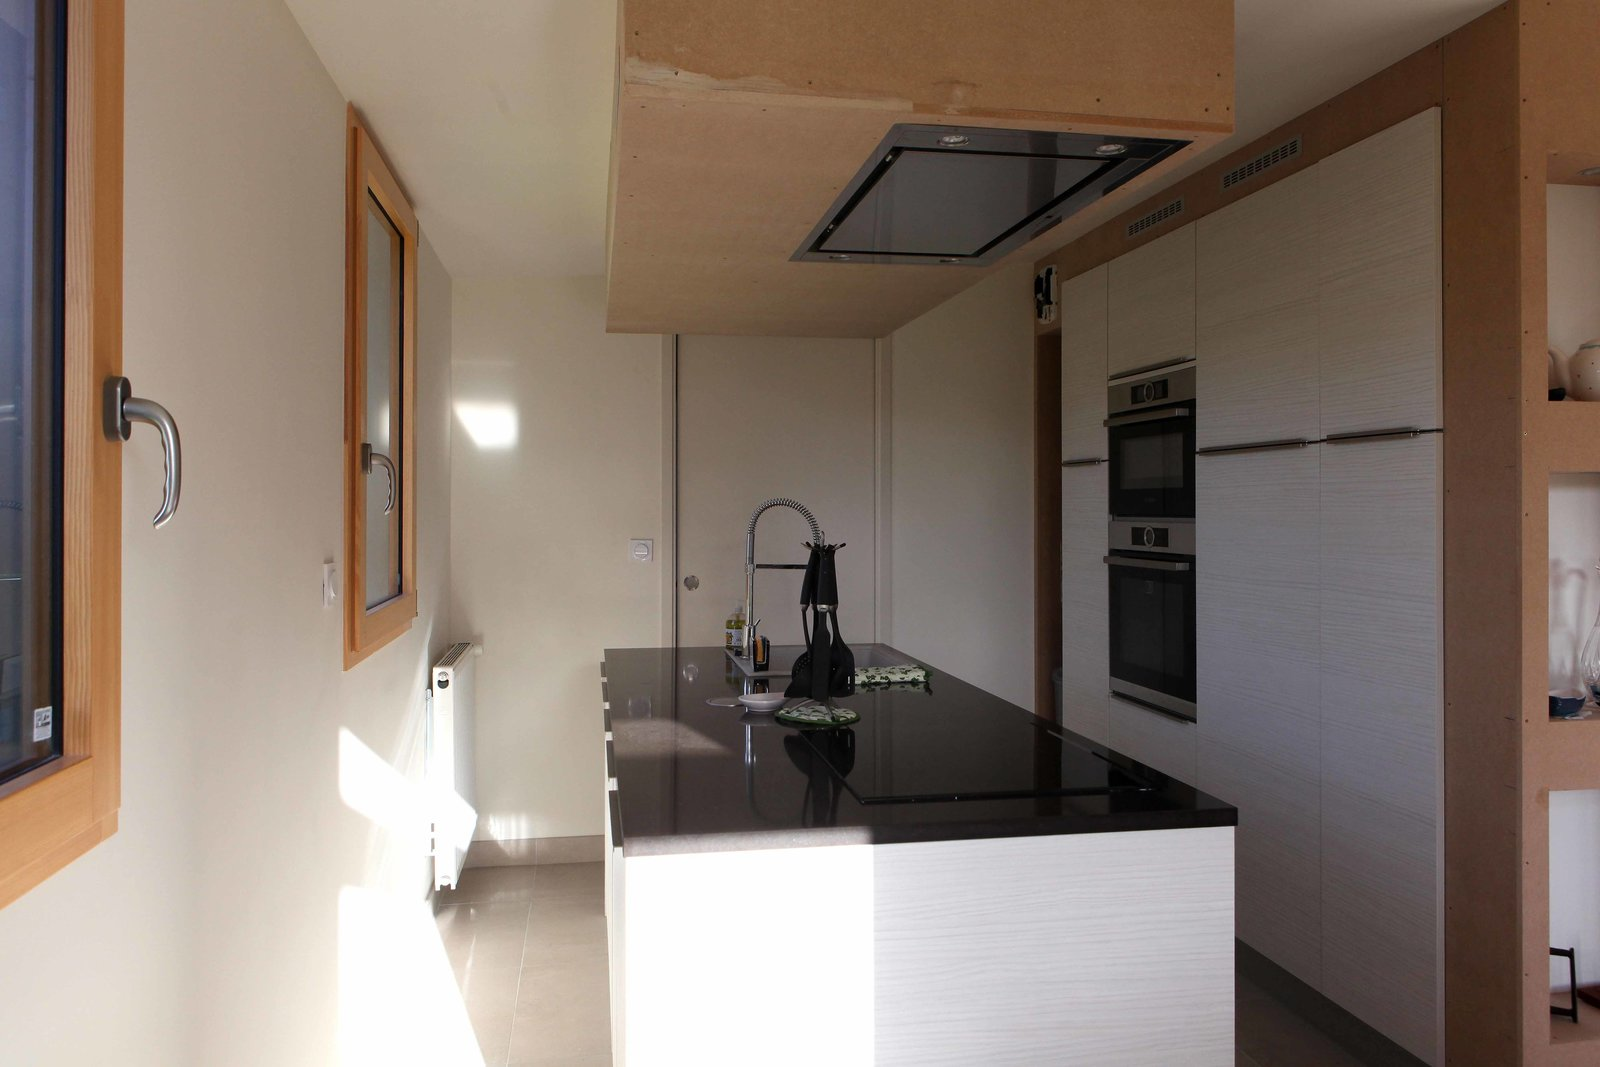 A low-pitched roof frames the third section of the home, which houses the kitchen and laundry room. Keeping the spaces small and separate allows for better insulation and temperature consistency throughout.  Photo 5 of 7 in A Cozy, Well-Sealed Cottage in Northwest France Goes Green